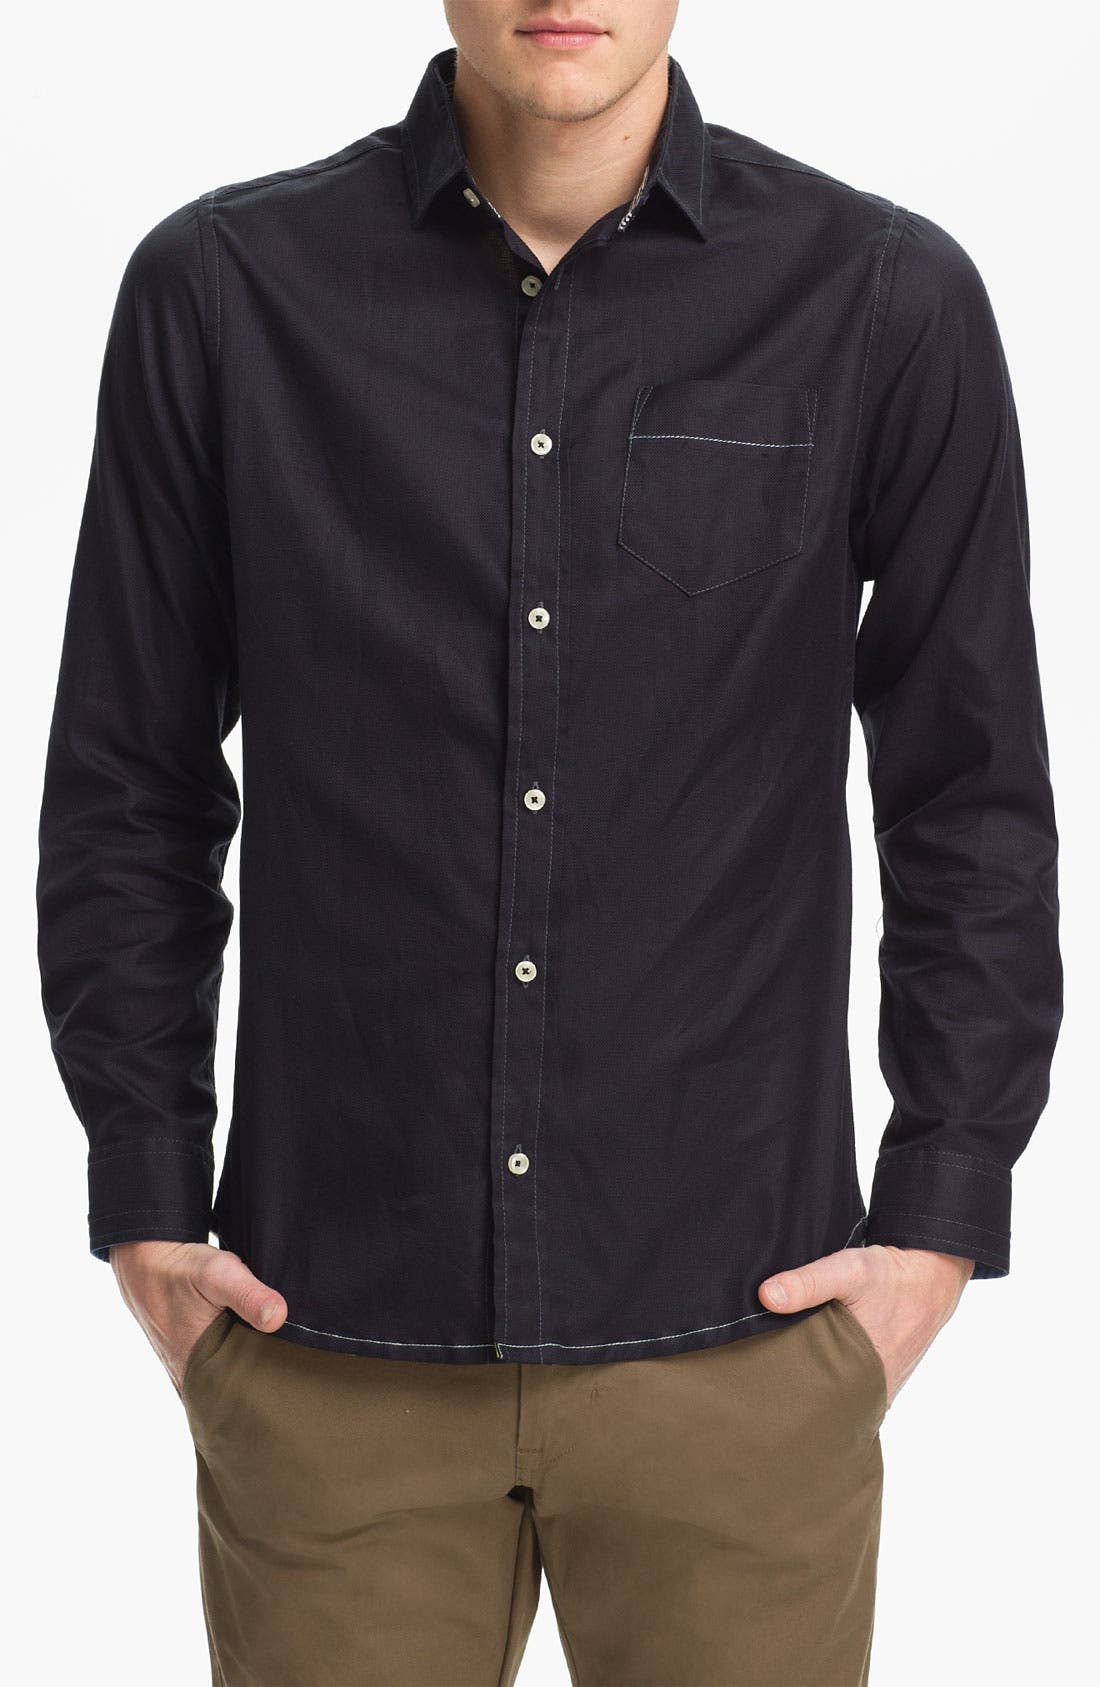 Alternate Image 1 Selected - Descendant of Thieves 'Royal' Trim Fit Shirt